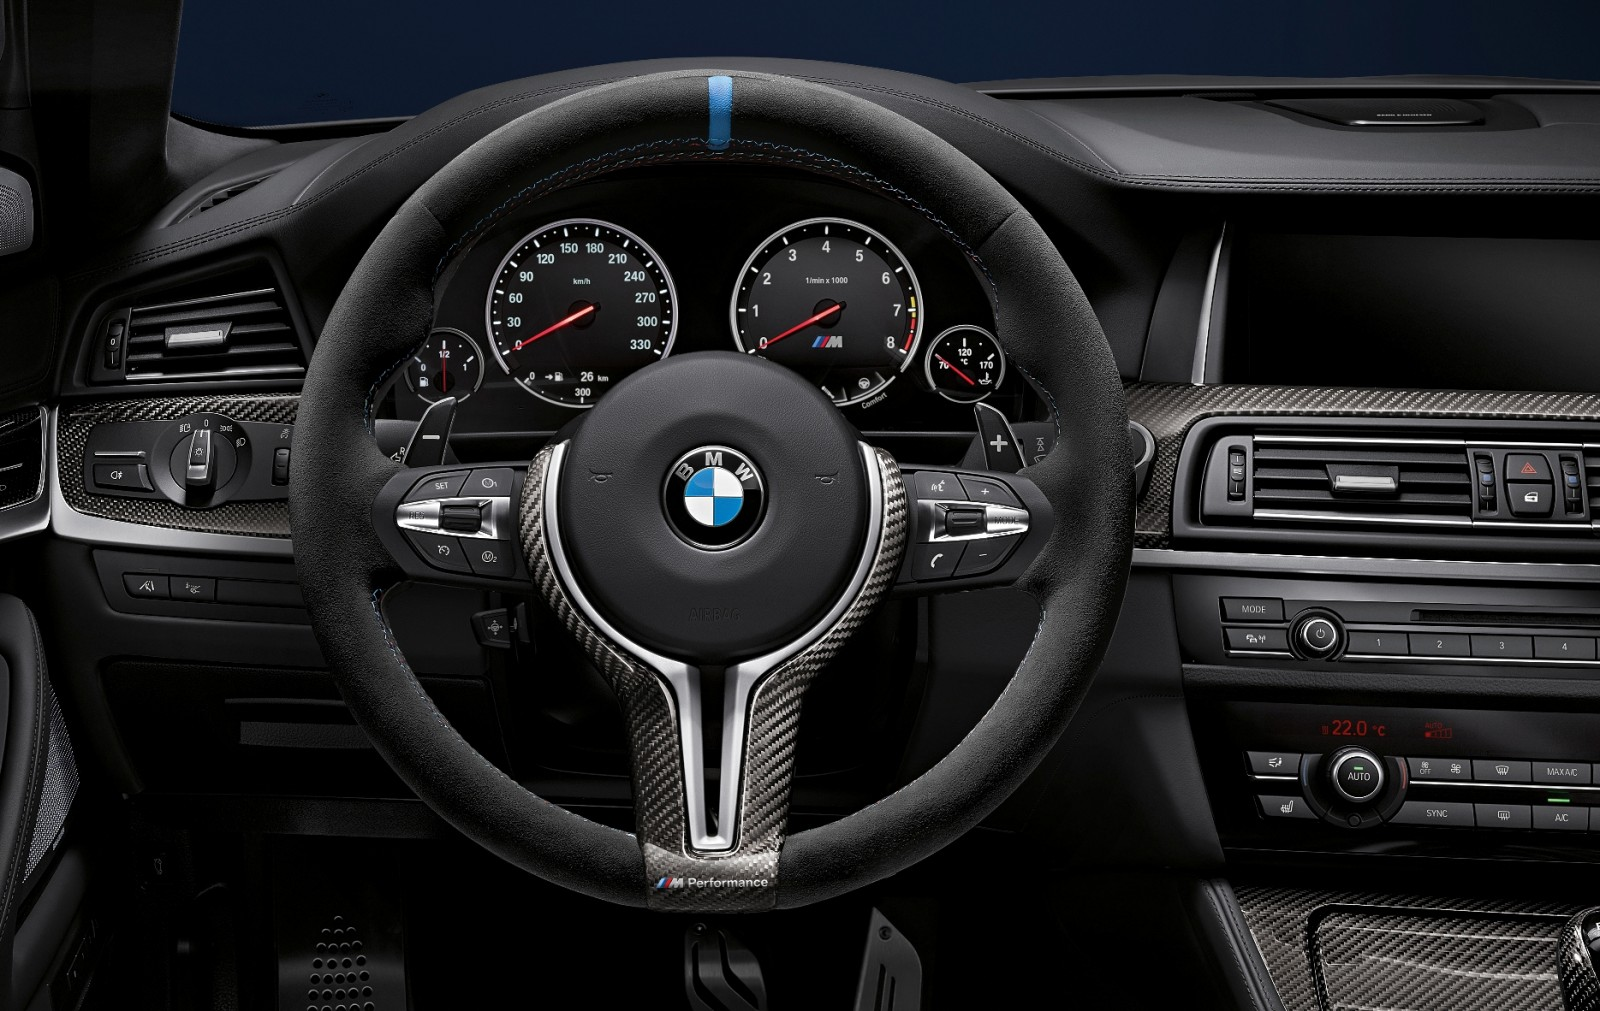 M Performance Catalog Offers Hundreds of Ways to Up the Drama and Road Presence of 335i, 535i, M3 and even the X5 and X6 64